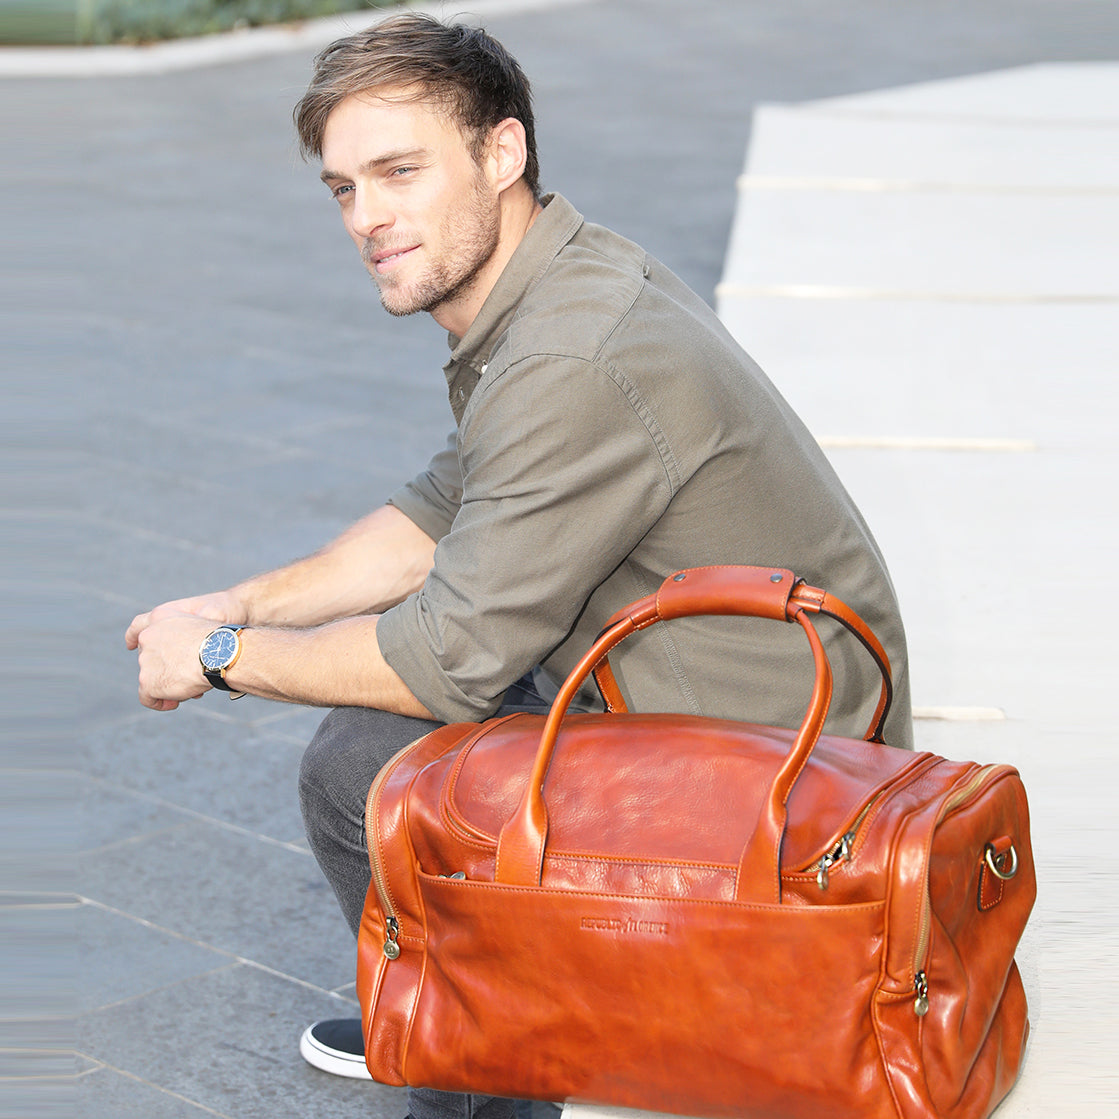 Bellini Tan Duffle Bag